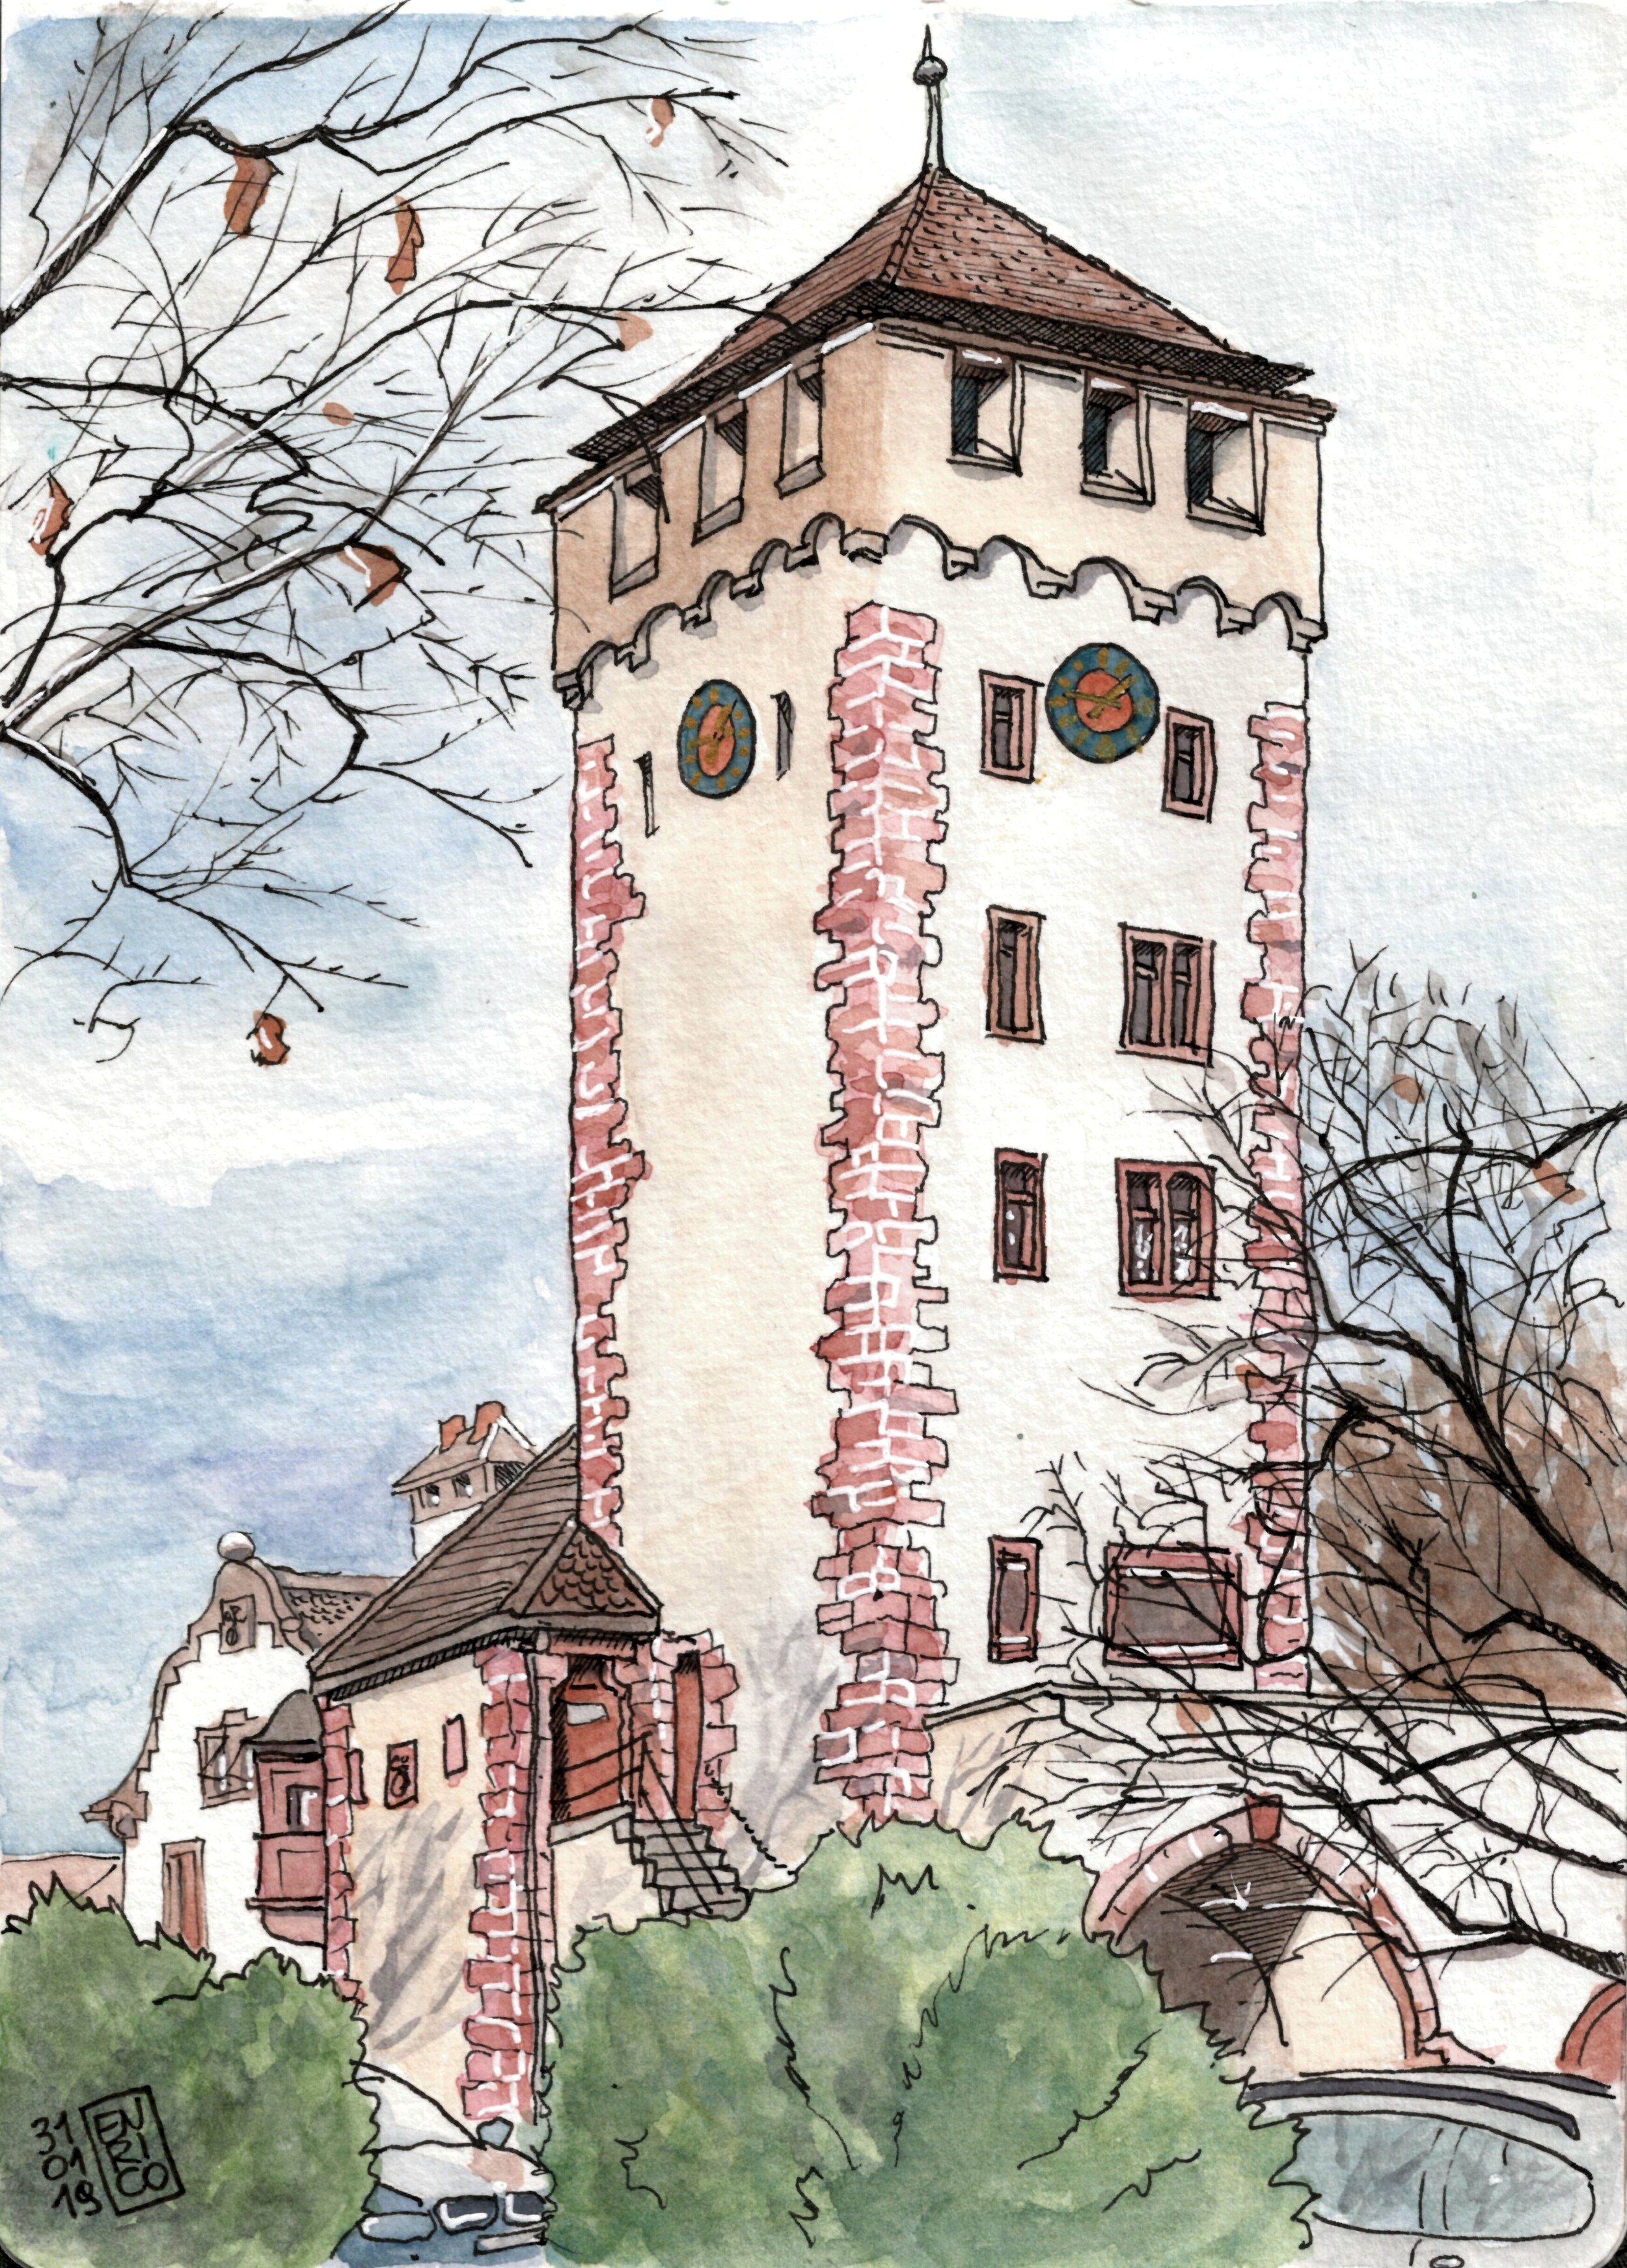 St-Johanns Tower, part of the old city walls